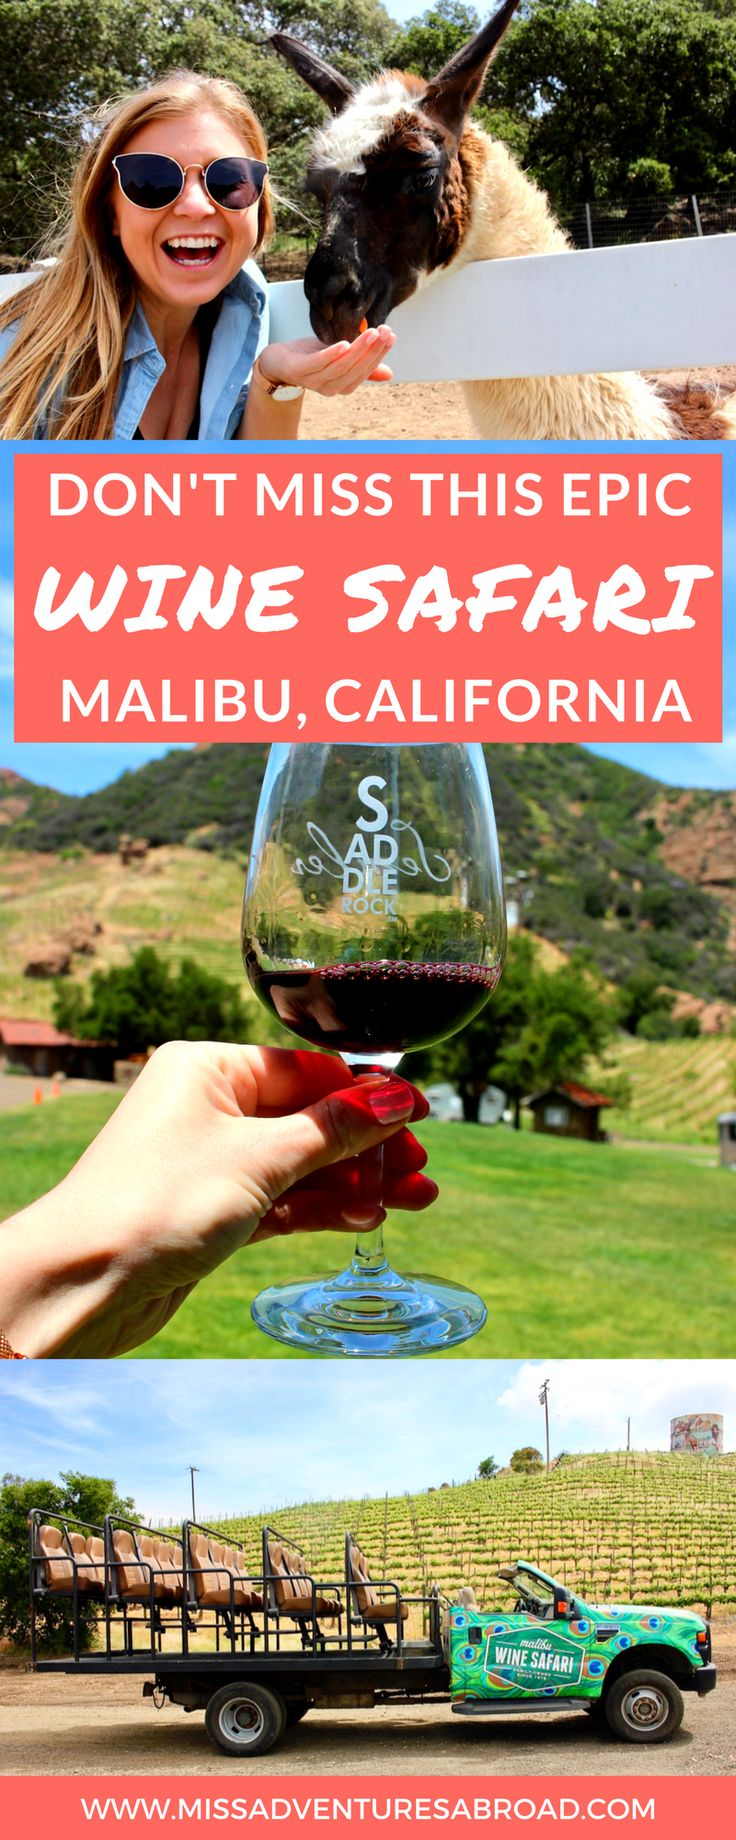 I Went On A Wine Safari In Malibu And It Was Amazing · If you are in Southern California and happen to love wine, animals, or both, then be sure to head to Malibu Wines for a wine tasting Safari! Make friends with llamas, feed a zebra, and taste California wines on the beautiful Saddlerock Ranch in Malibu.